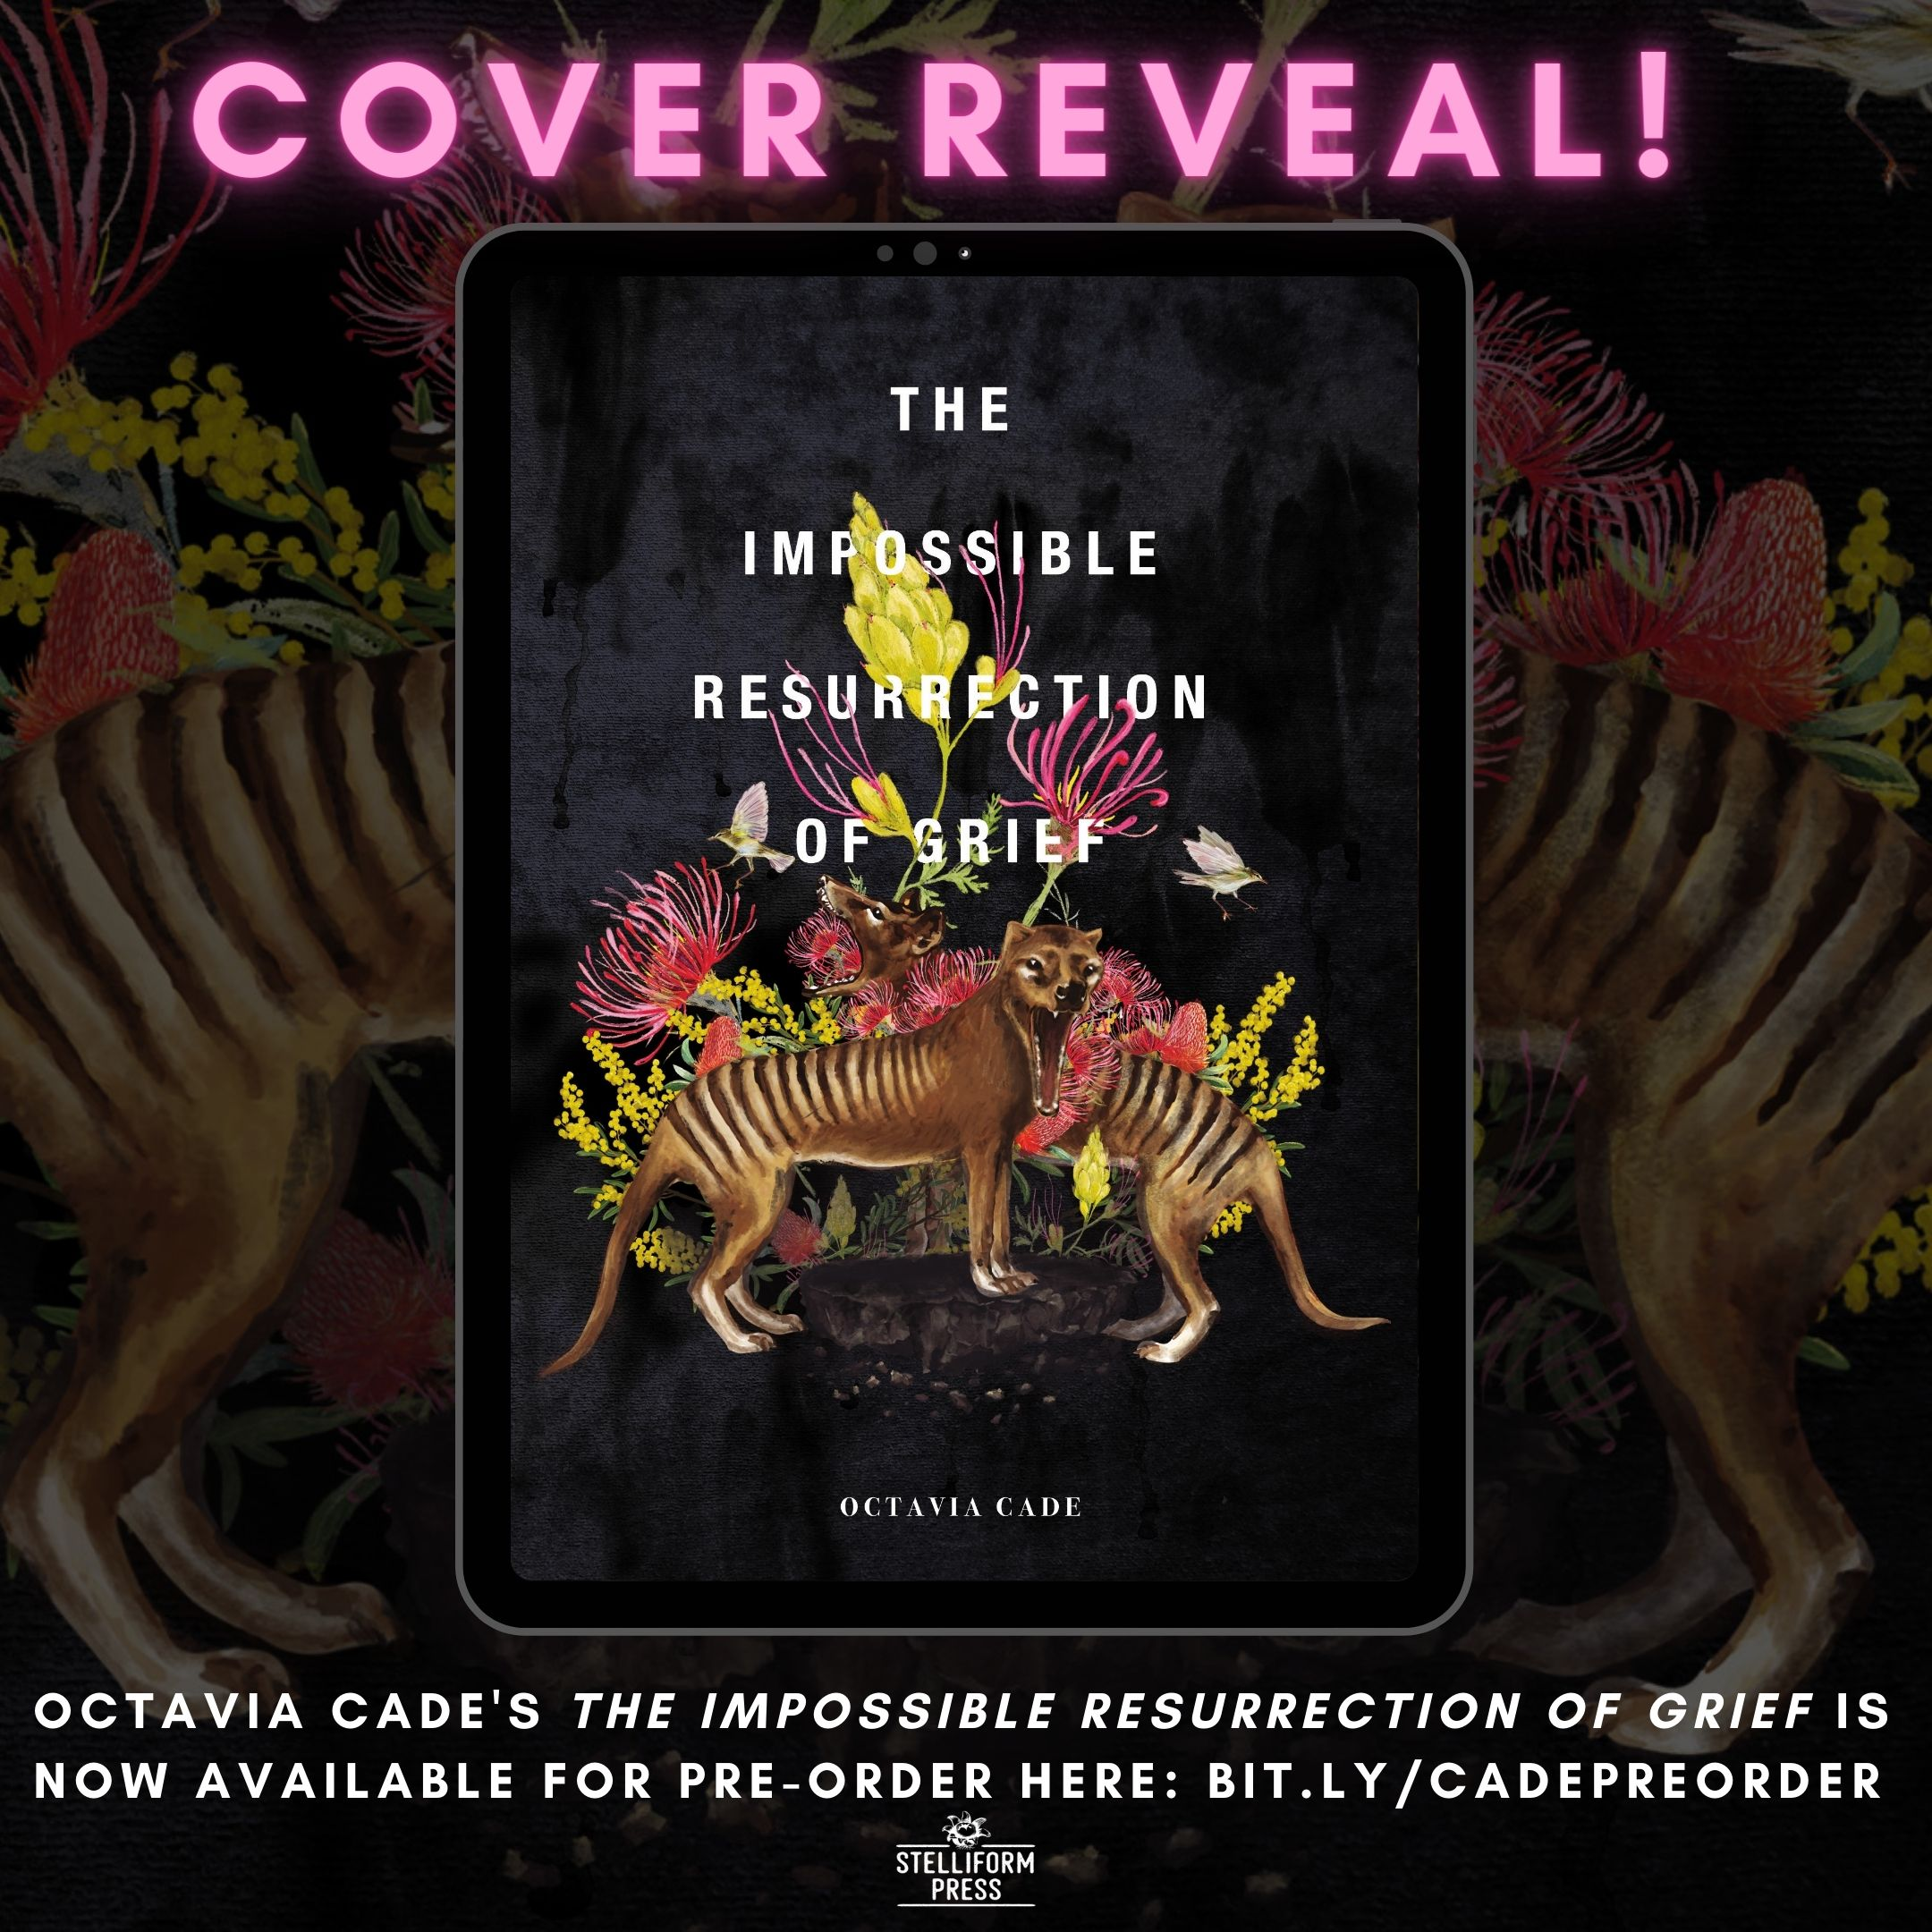 Cover reveal Announcement for Octavia Cade's The Impossible Resurrection of Grief